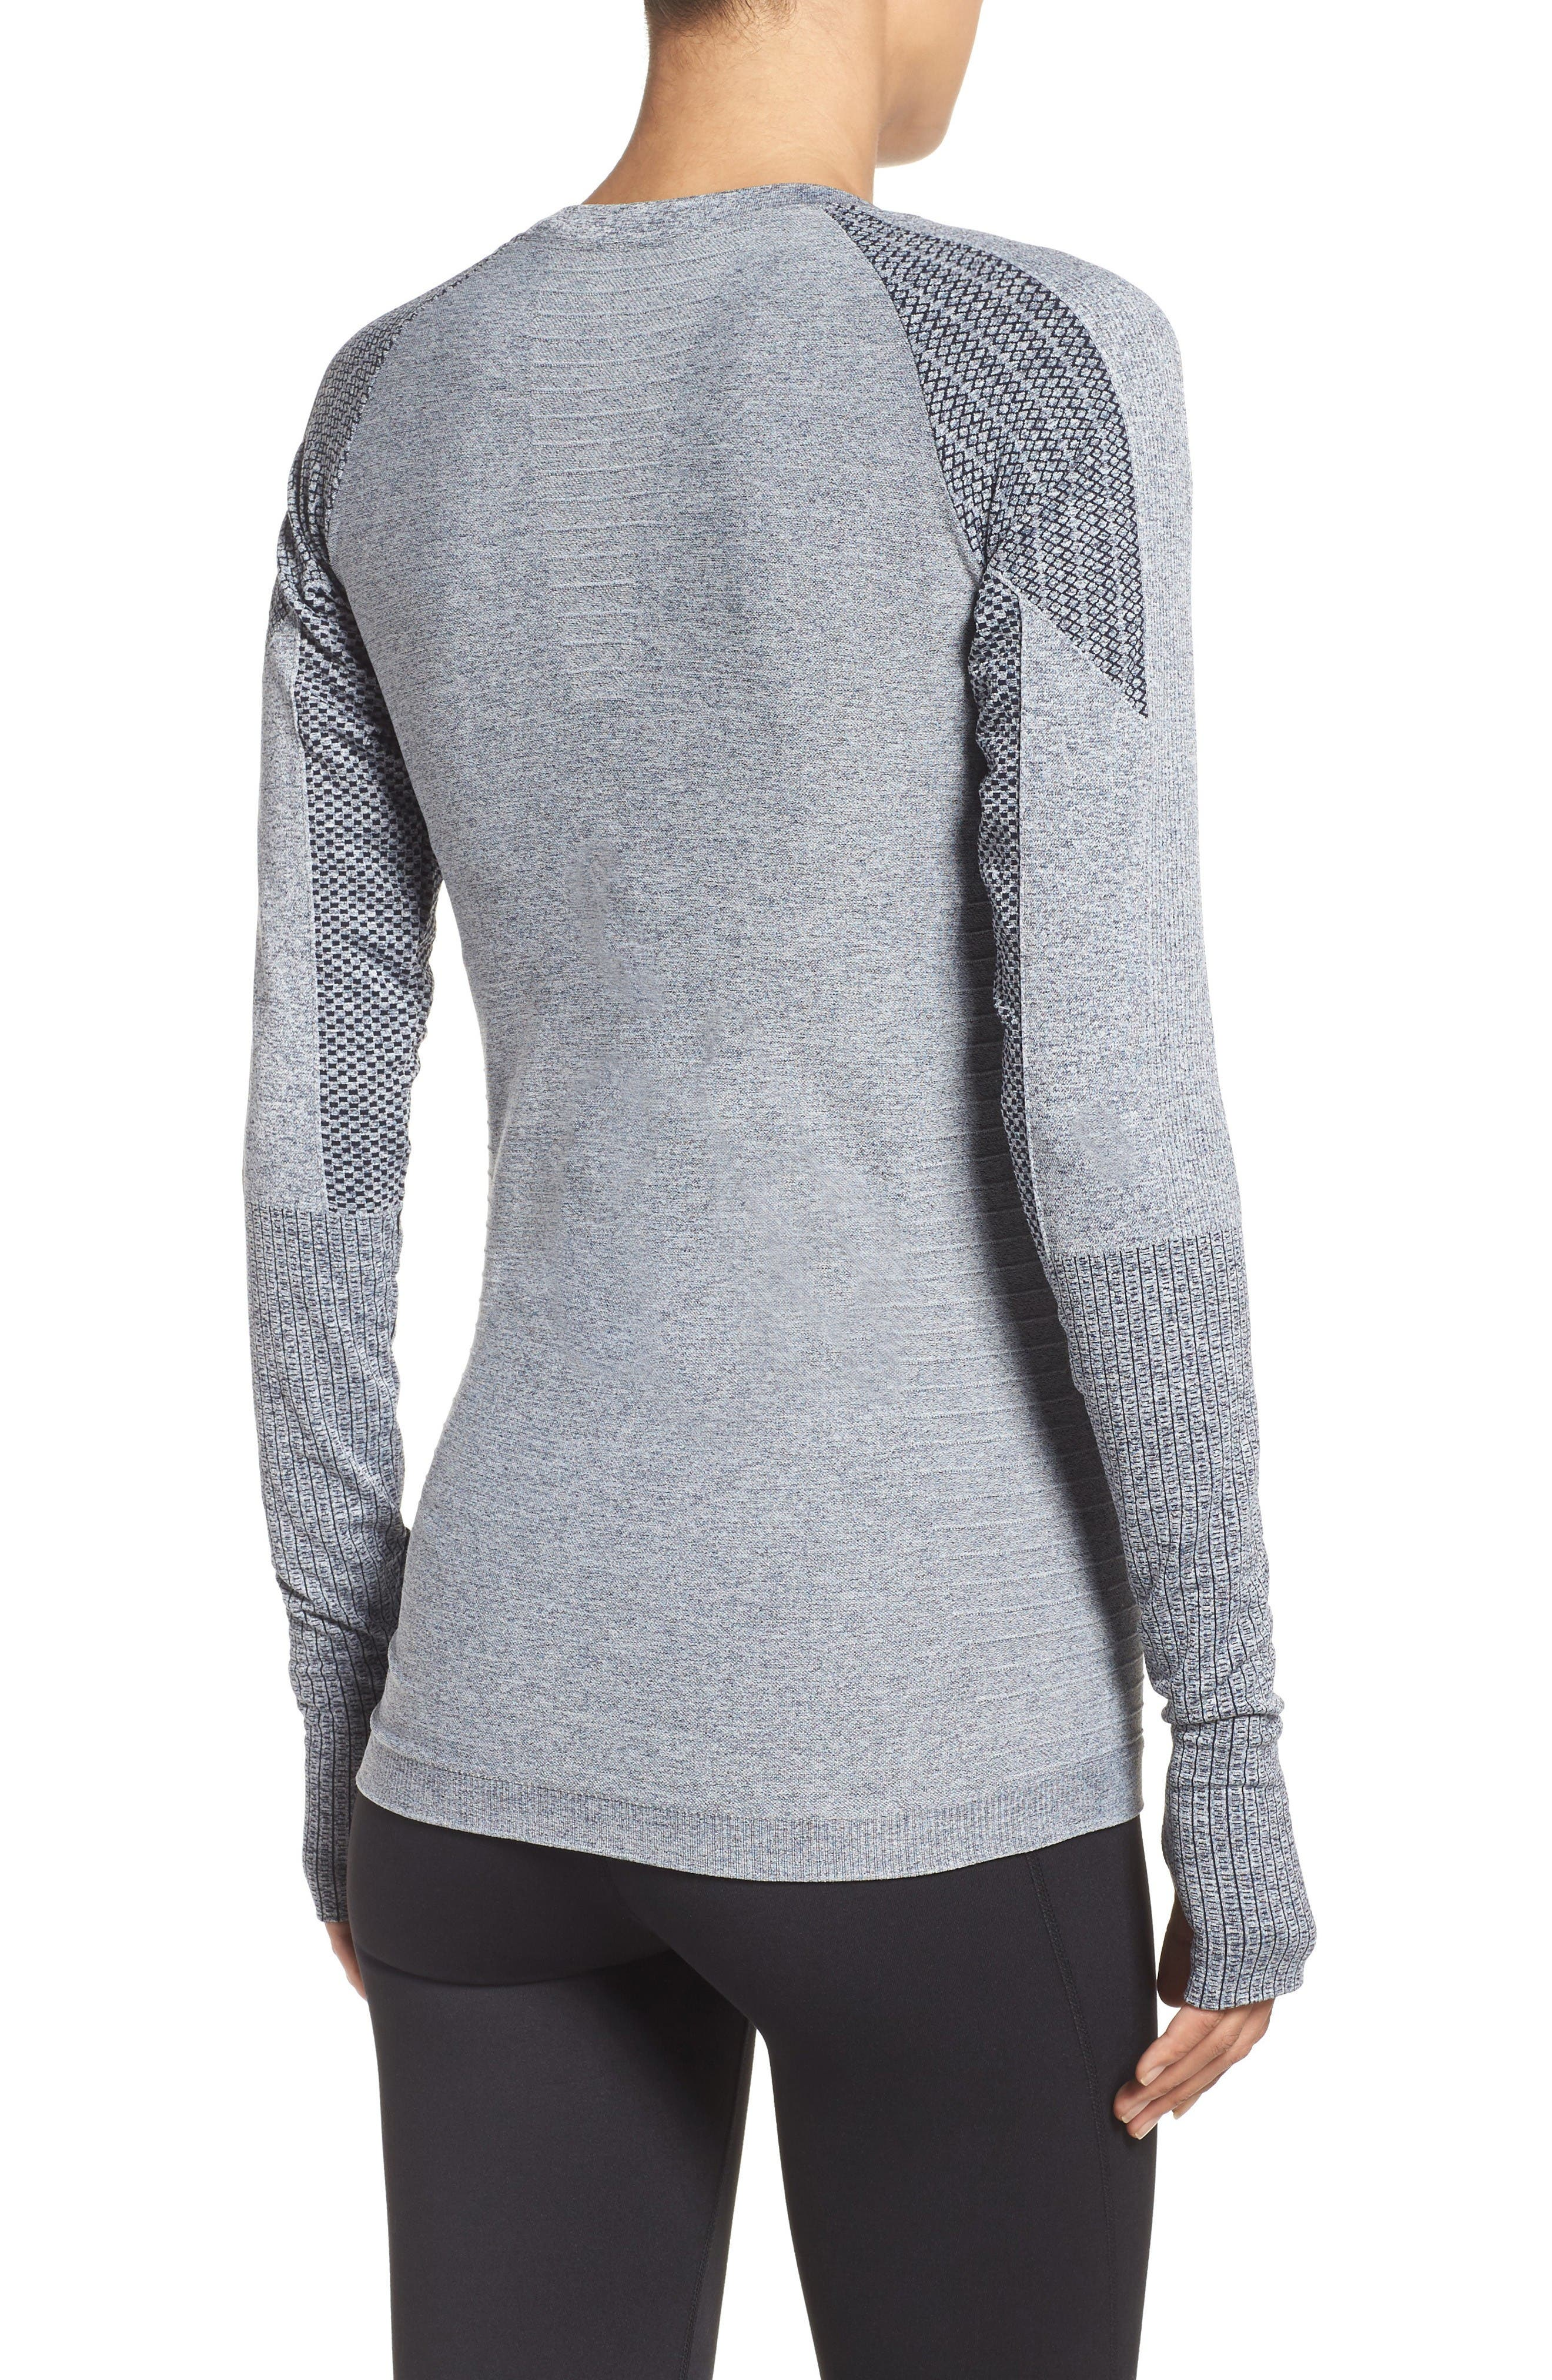 Dynamic Running Top,                             Alternate thumbnail 2, color,                             Grey/ White Melange